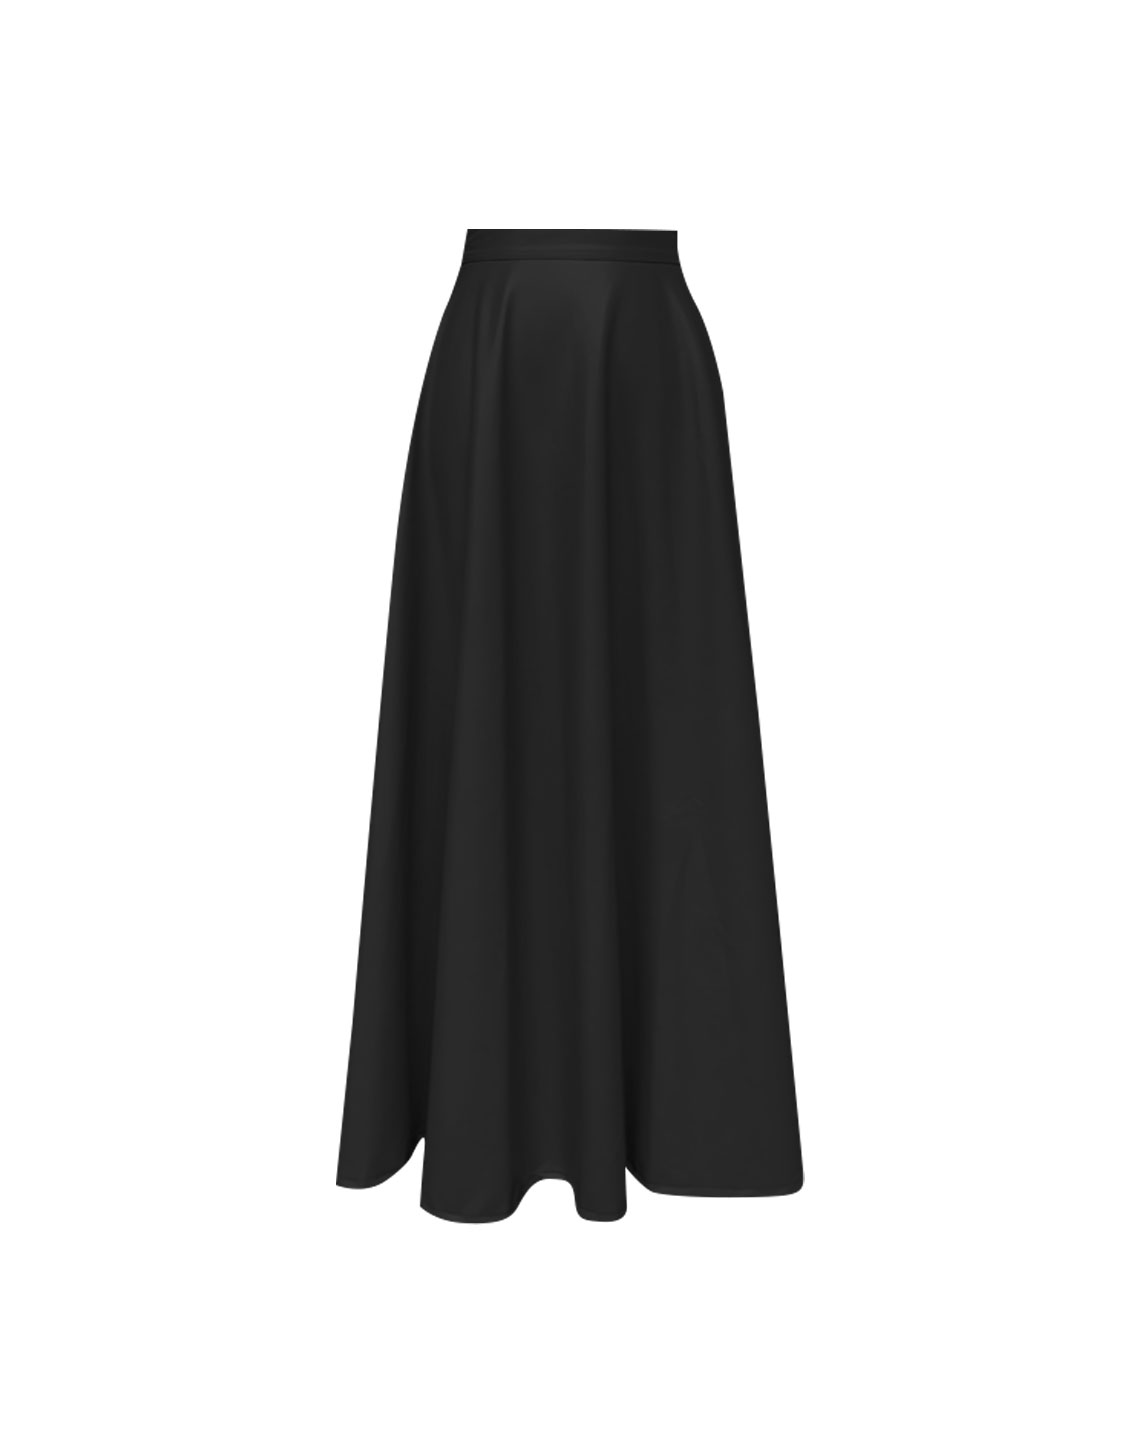 New Hibiscus - Black by Jessica K on curated-crowd.com